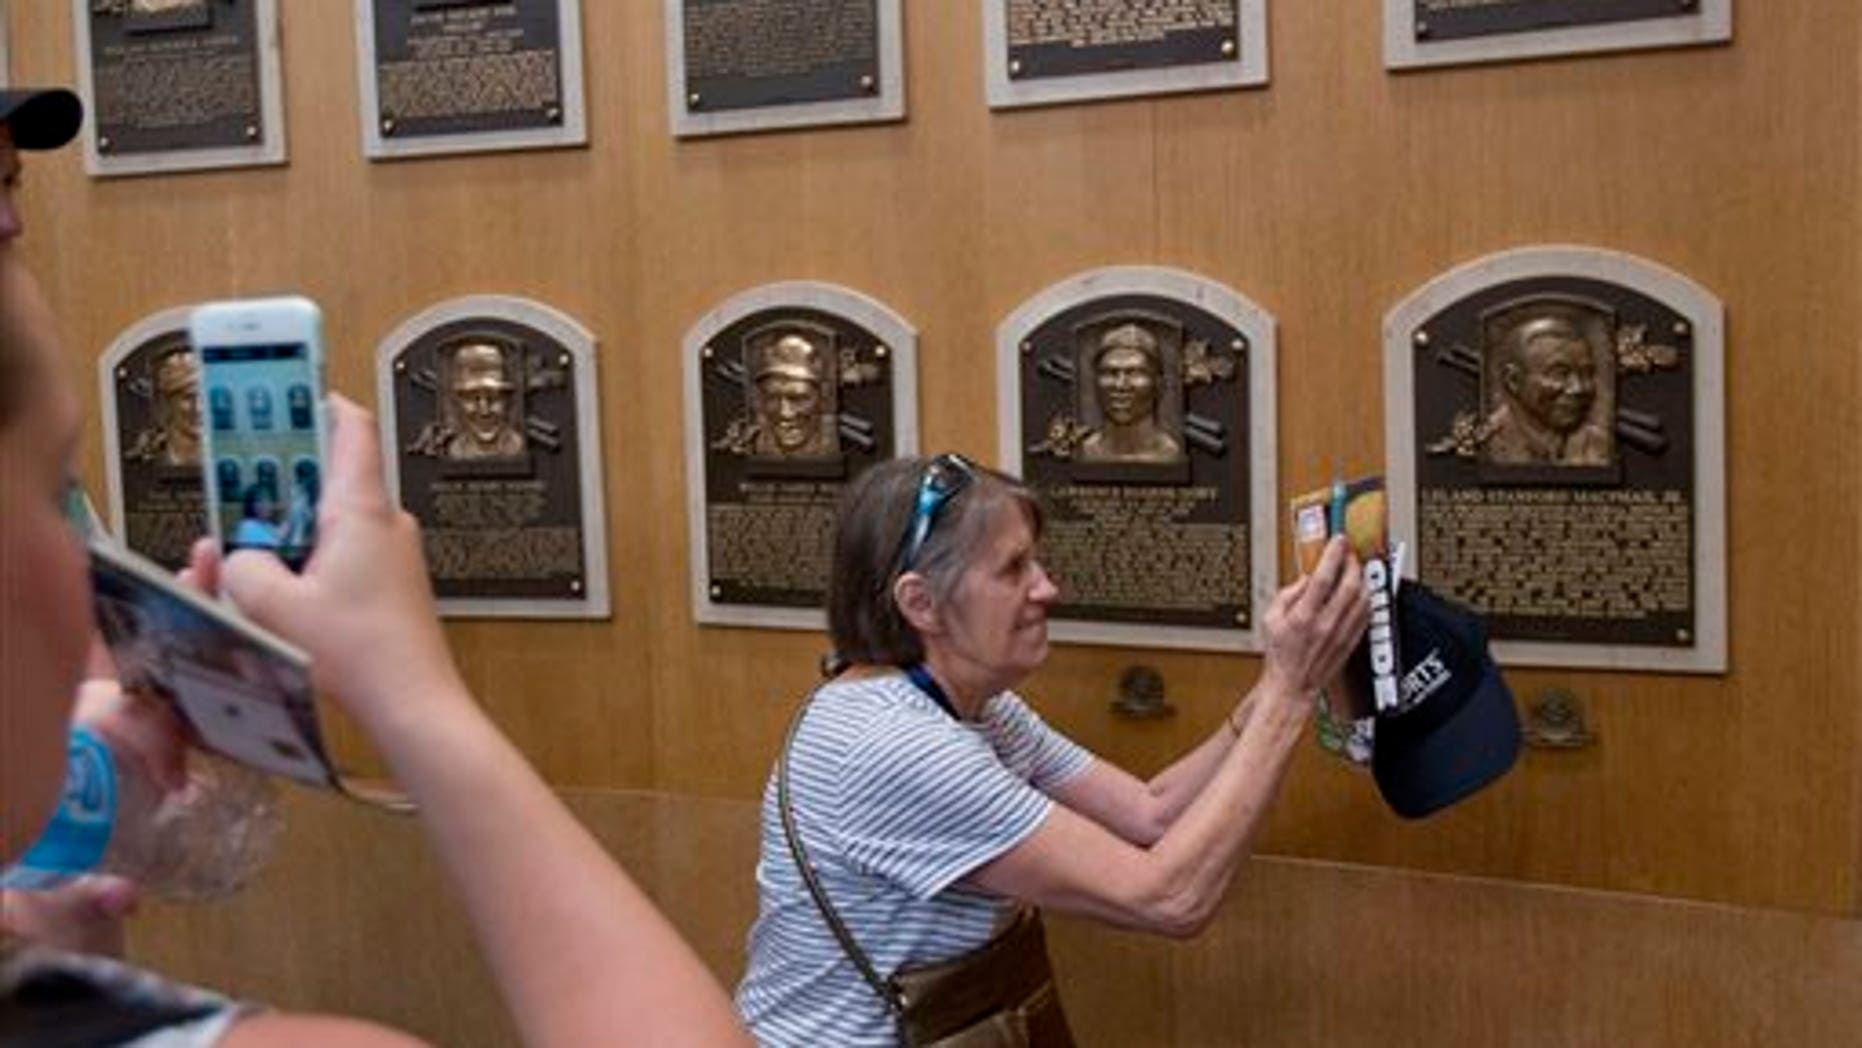 Fans visit the Plaque Gallery at the National Baseball Hall of Fame on Saturday, July 25, 2015, in Cooperstown, N.Y. Former Major League Baseball players Pedro Martinez, Randy Johnson, Craig Biggio and John Smoltz will be inducted to the hall on Sunday. (AP Photo/Mike Groll)